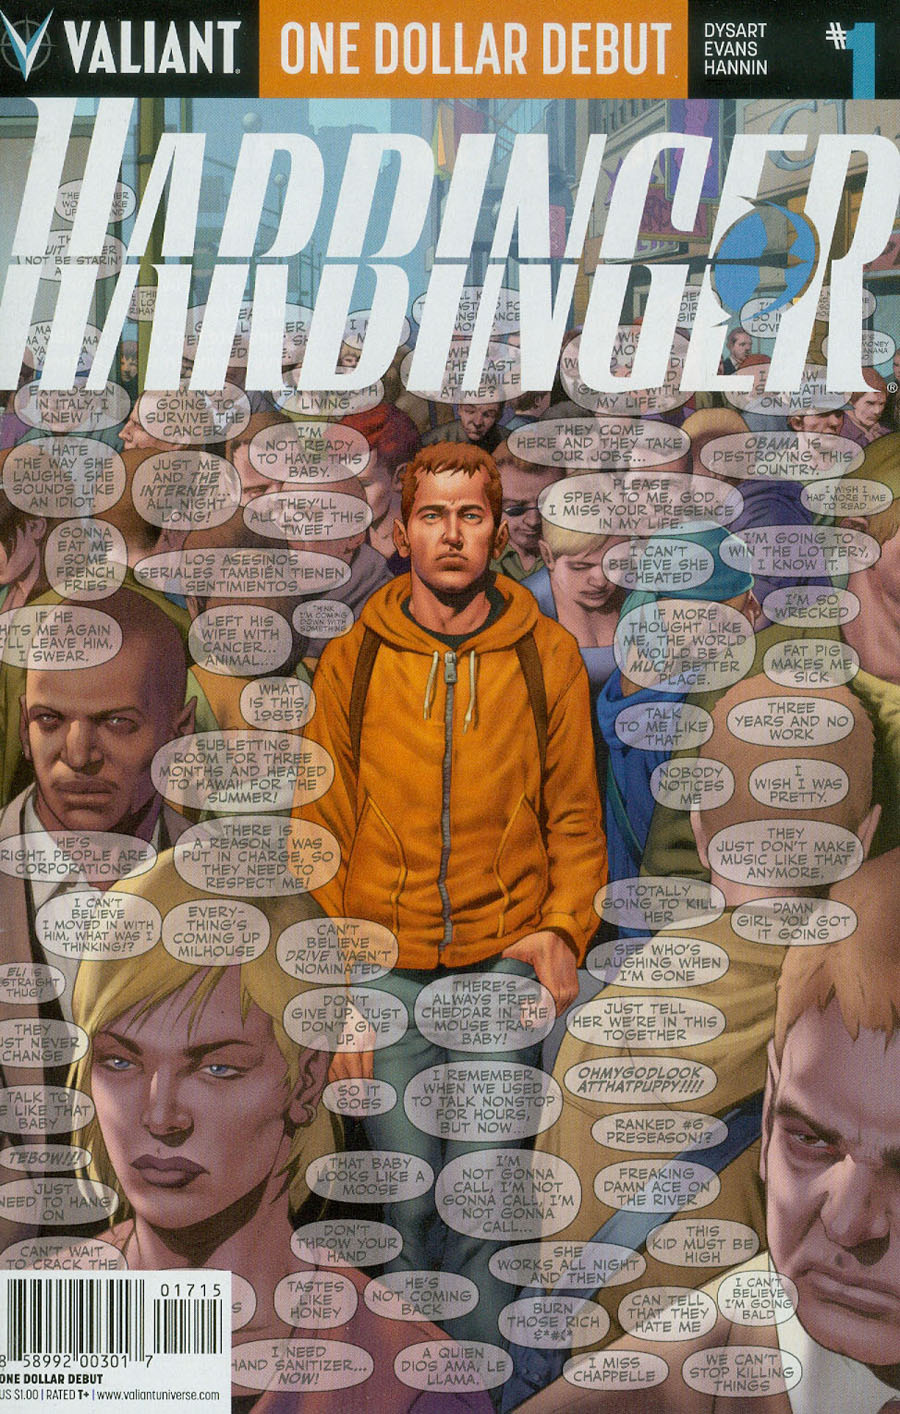 Harbinger Vol 2 #1 Cover H One Dollar Debut Edition Newer Printing